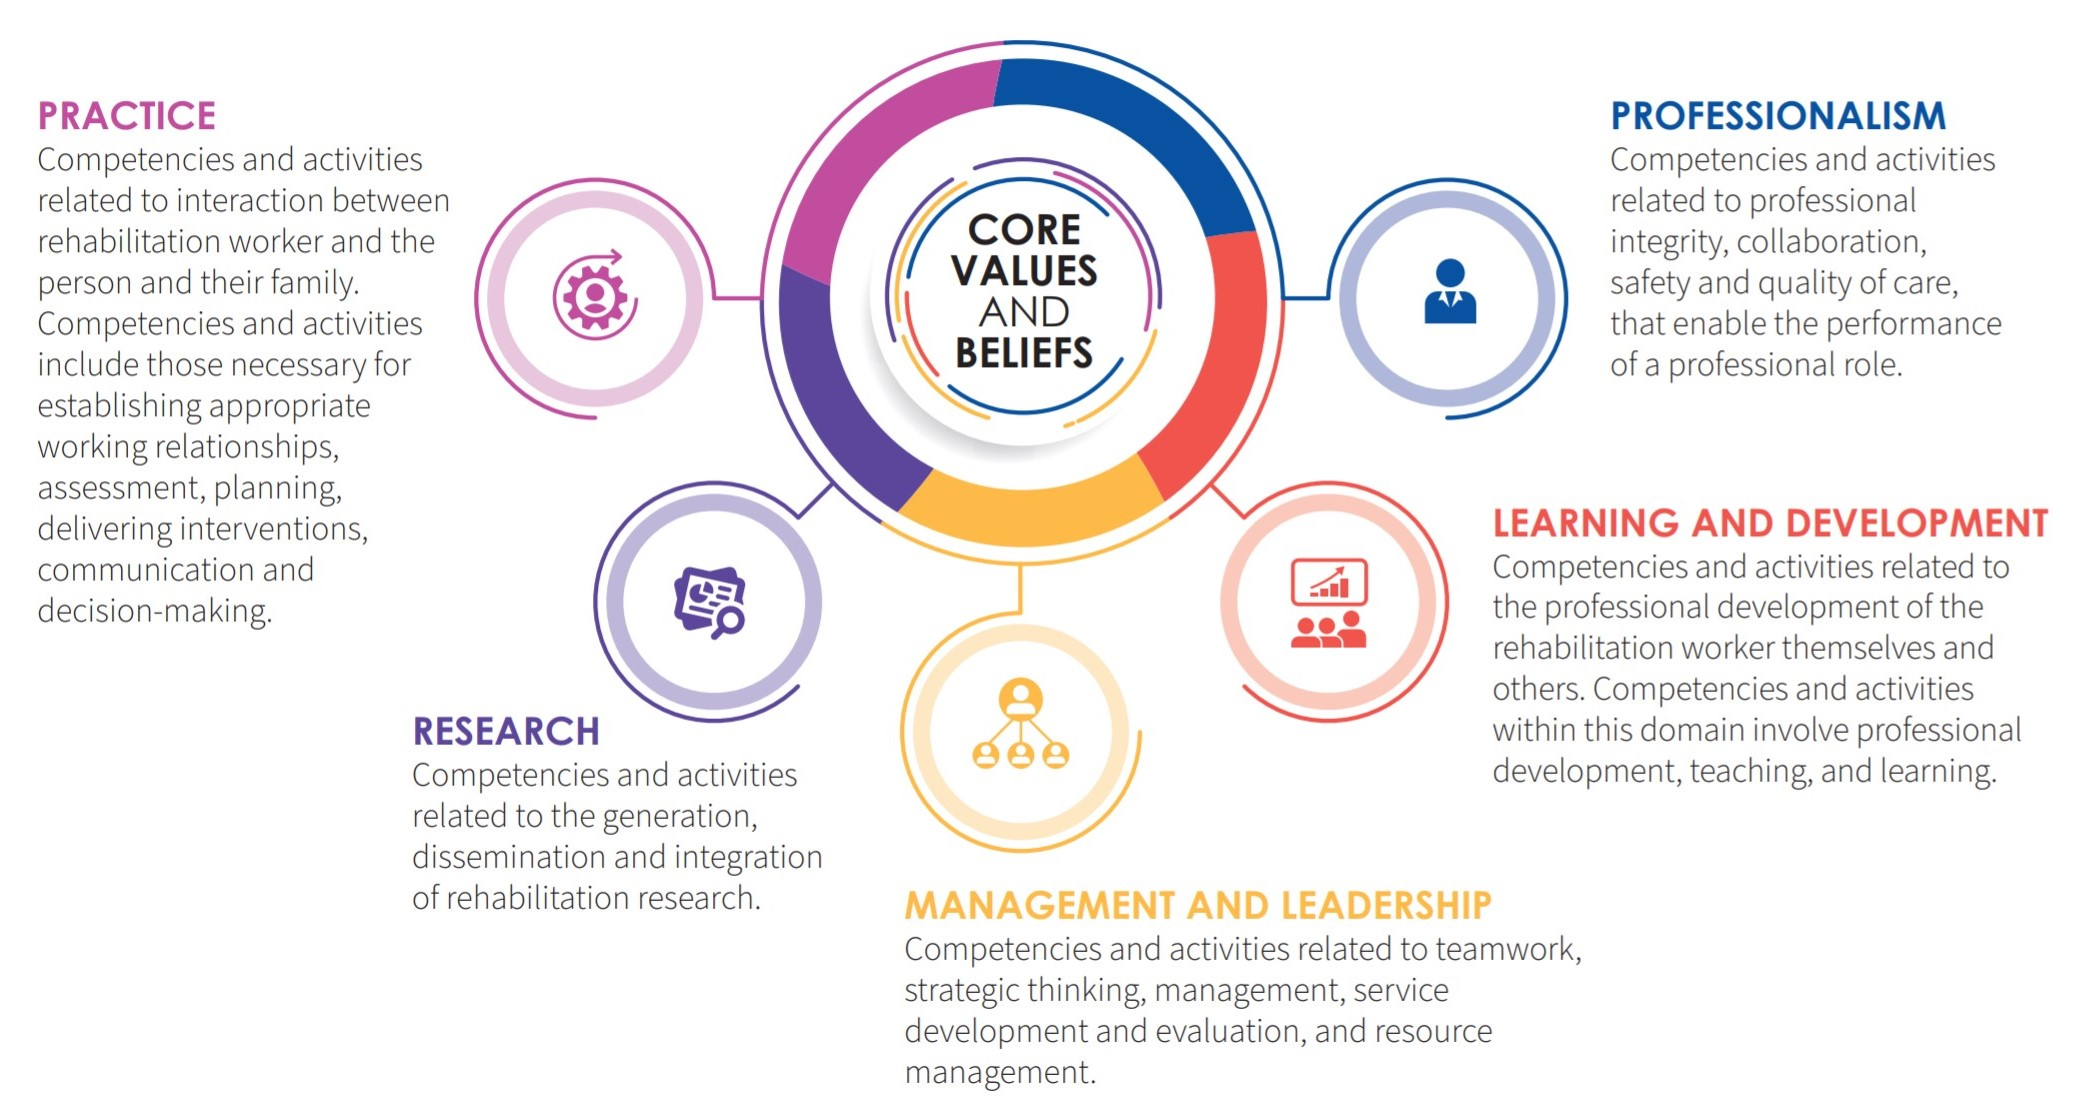 RCF 5 Domains. Practice, research, management and leadership, learning and development and professionalism shown in a circular image.